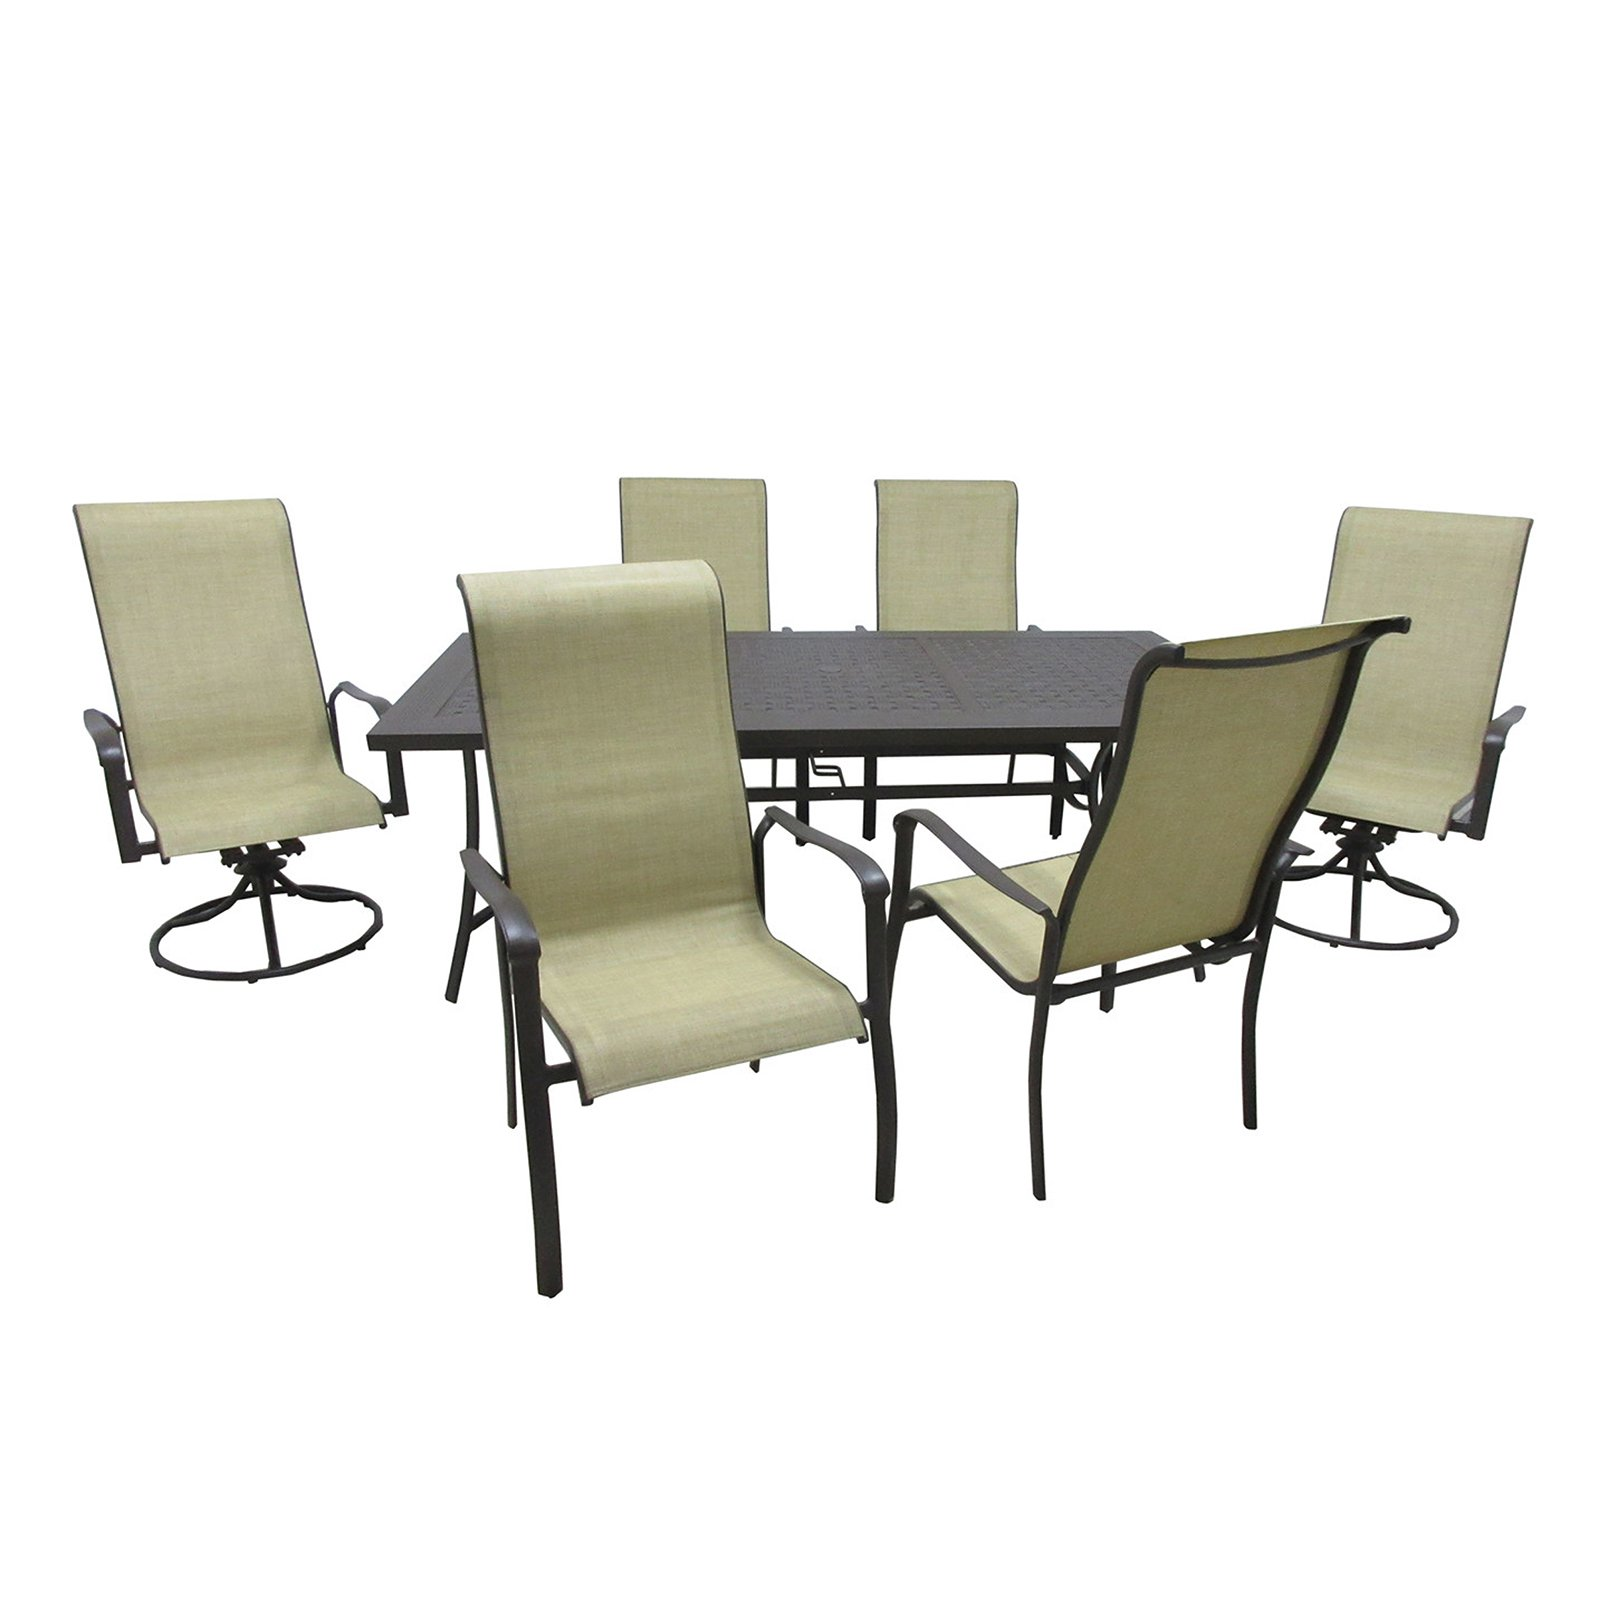 Outdoor Innovation Pacifica Aluminum 7 Piece Patio Dining Room Set by Overstock